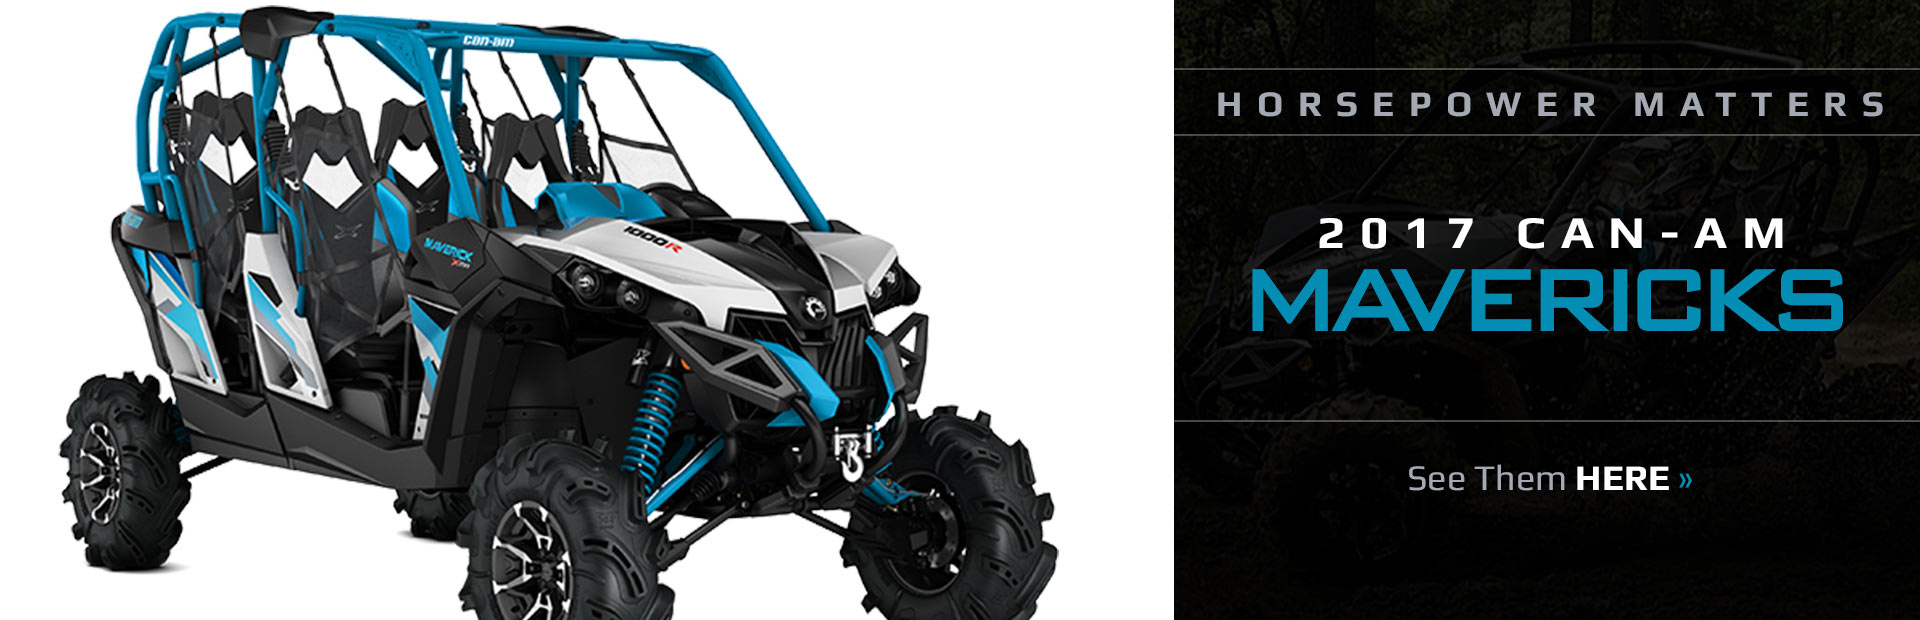 2017 Can-Am Mavericks: Click here to view the models.